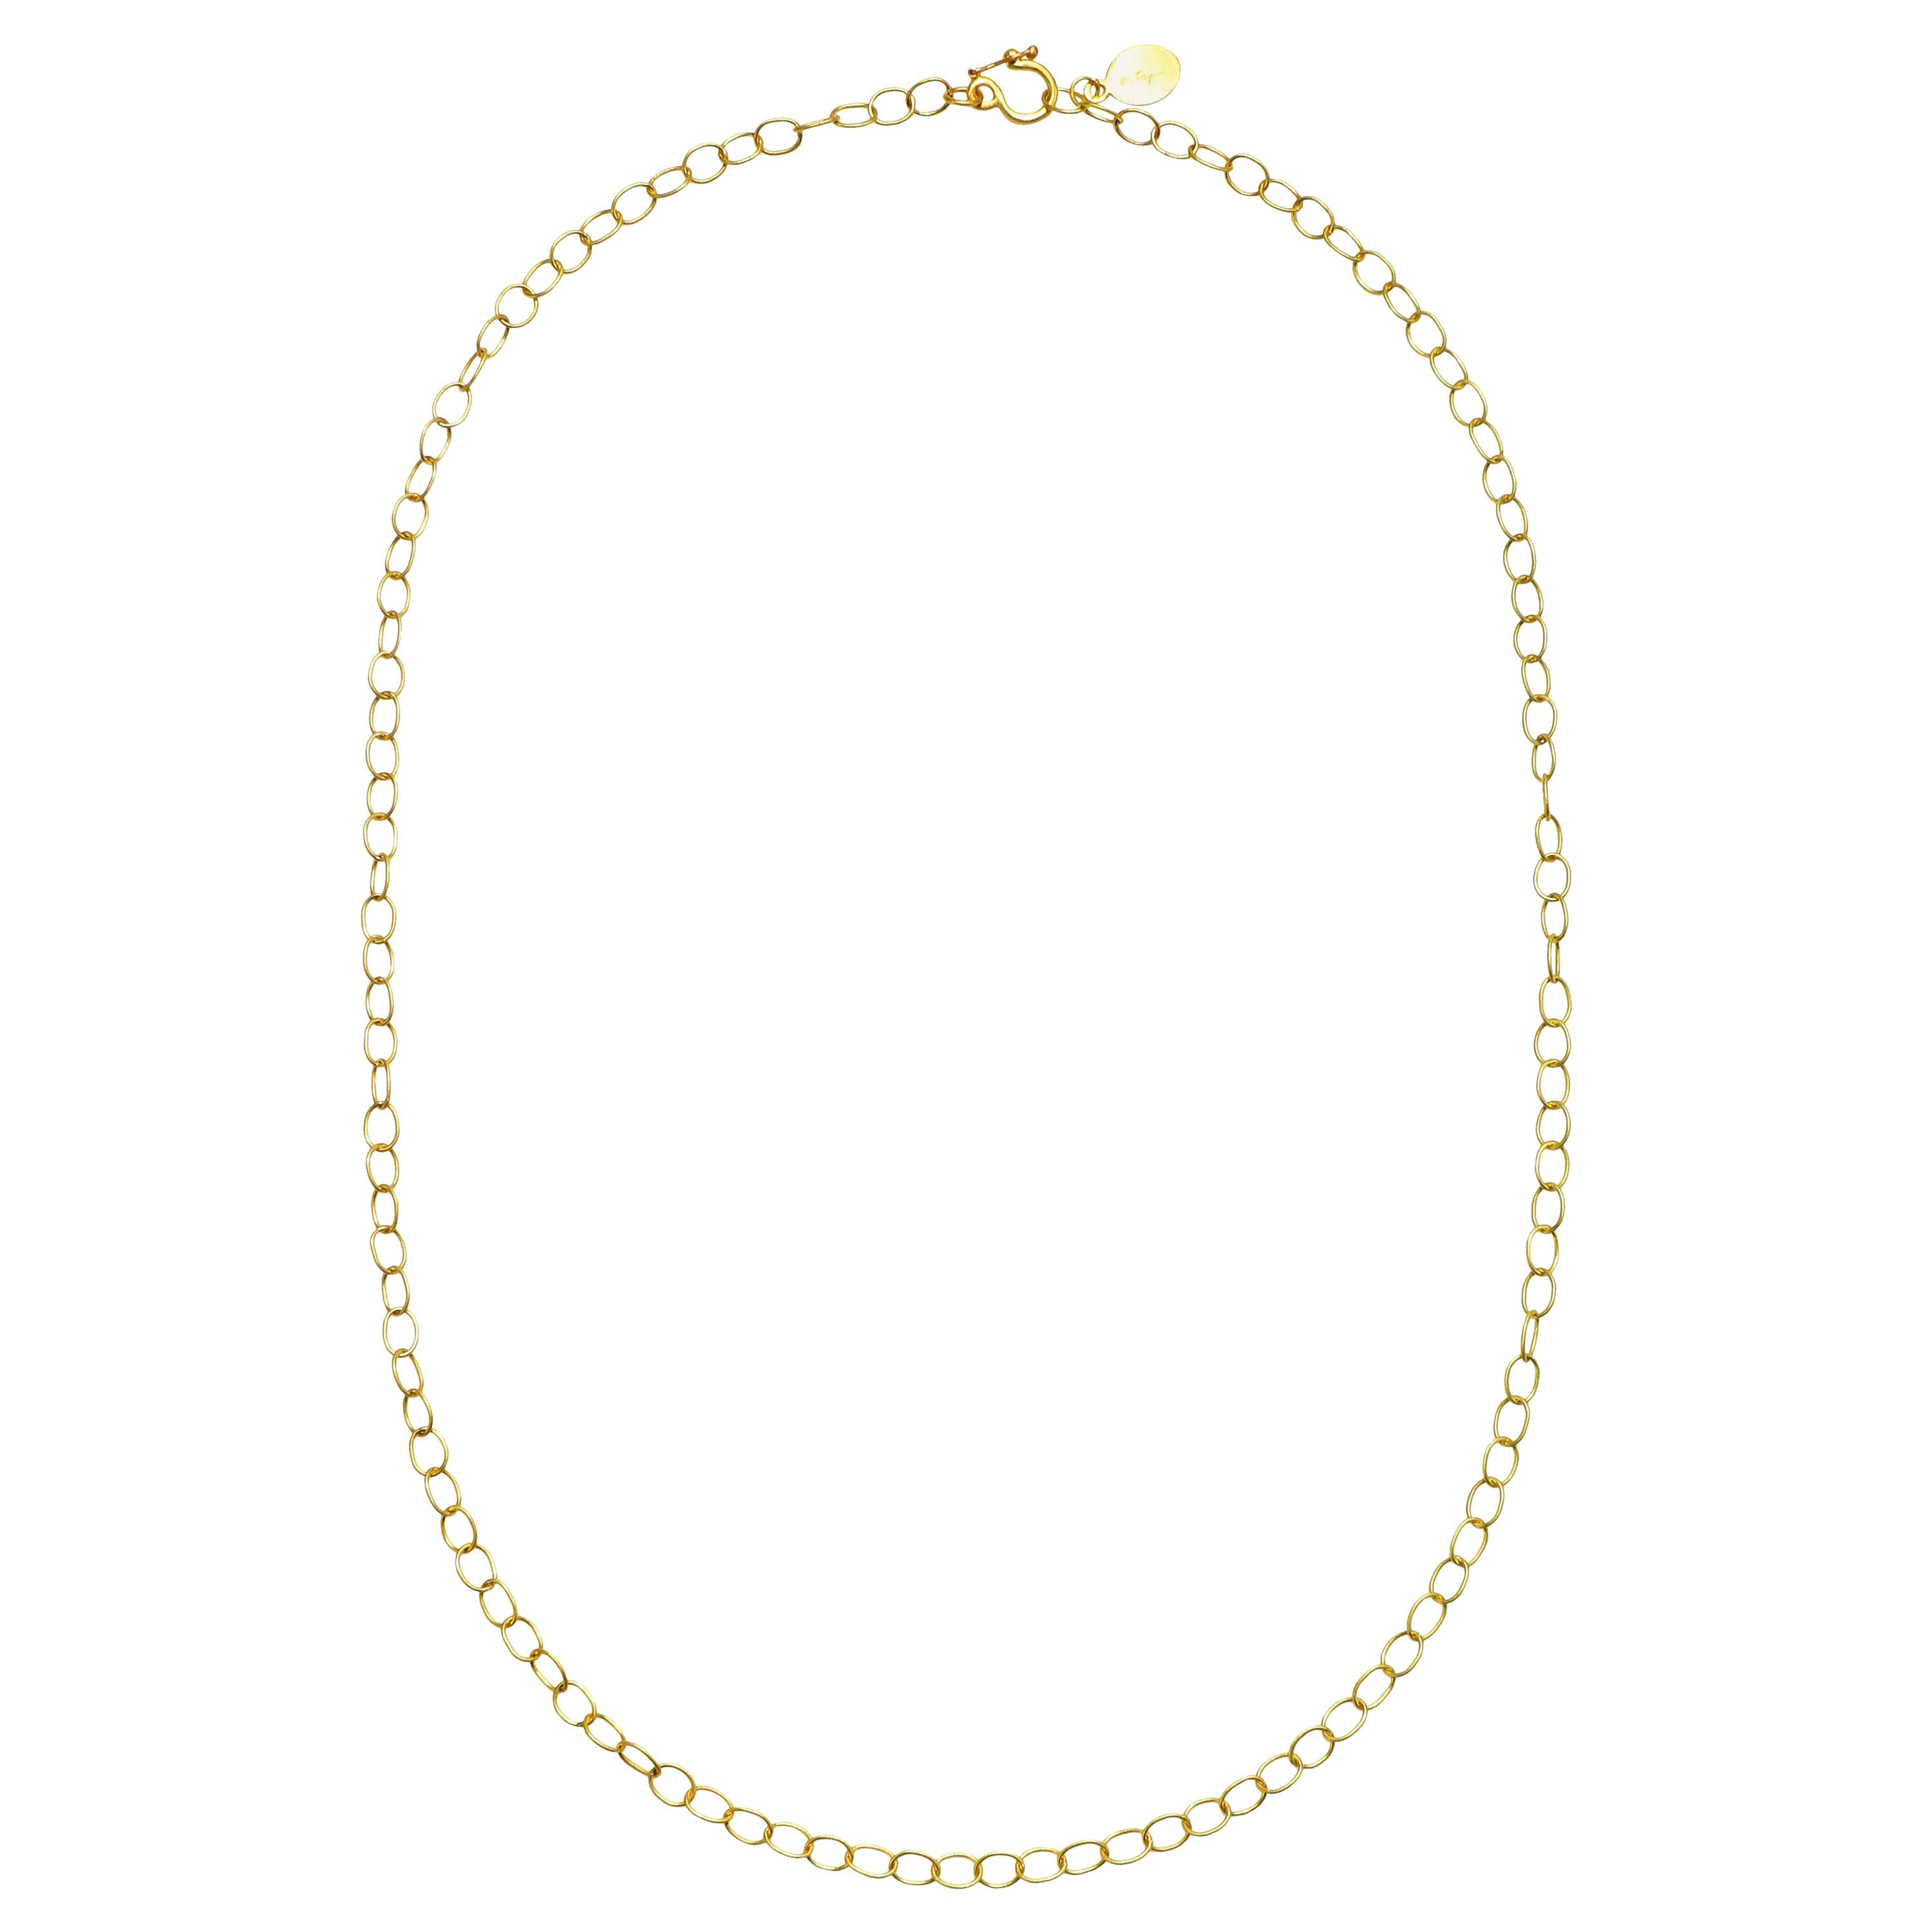 Faye Kim 18 Karat Gold Handmade Medium Oval Link Chain